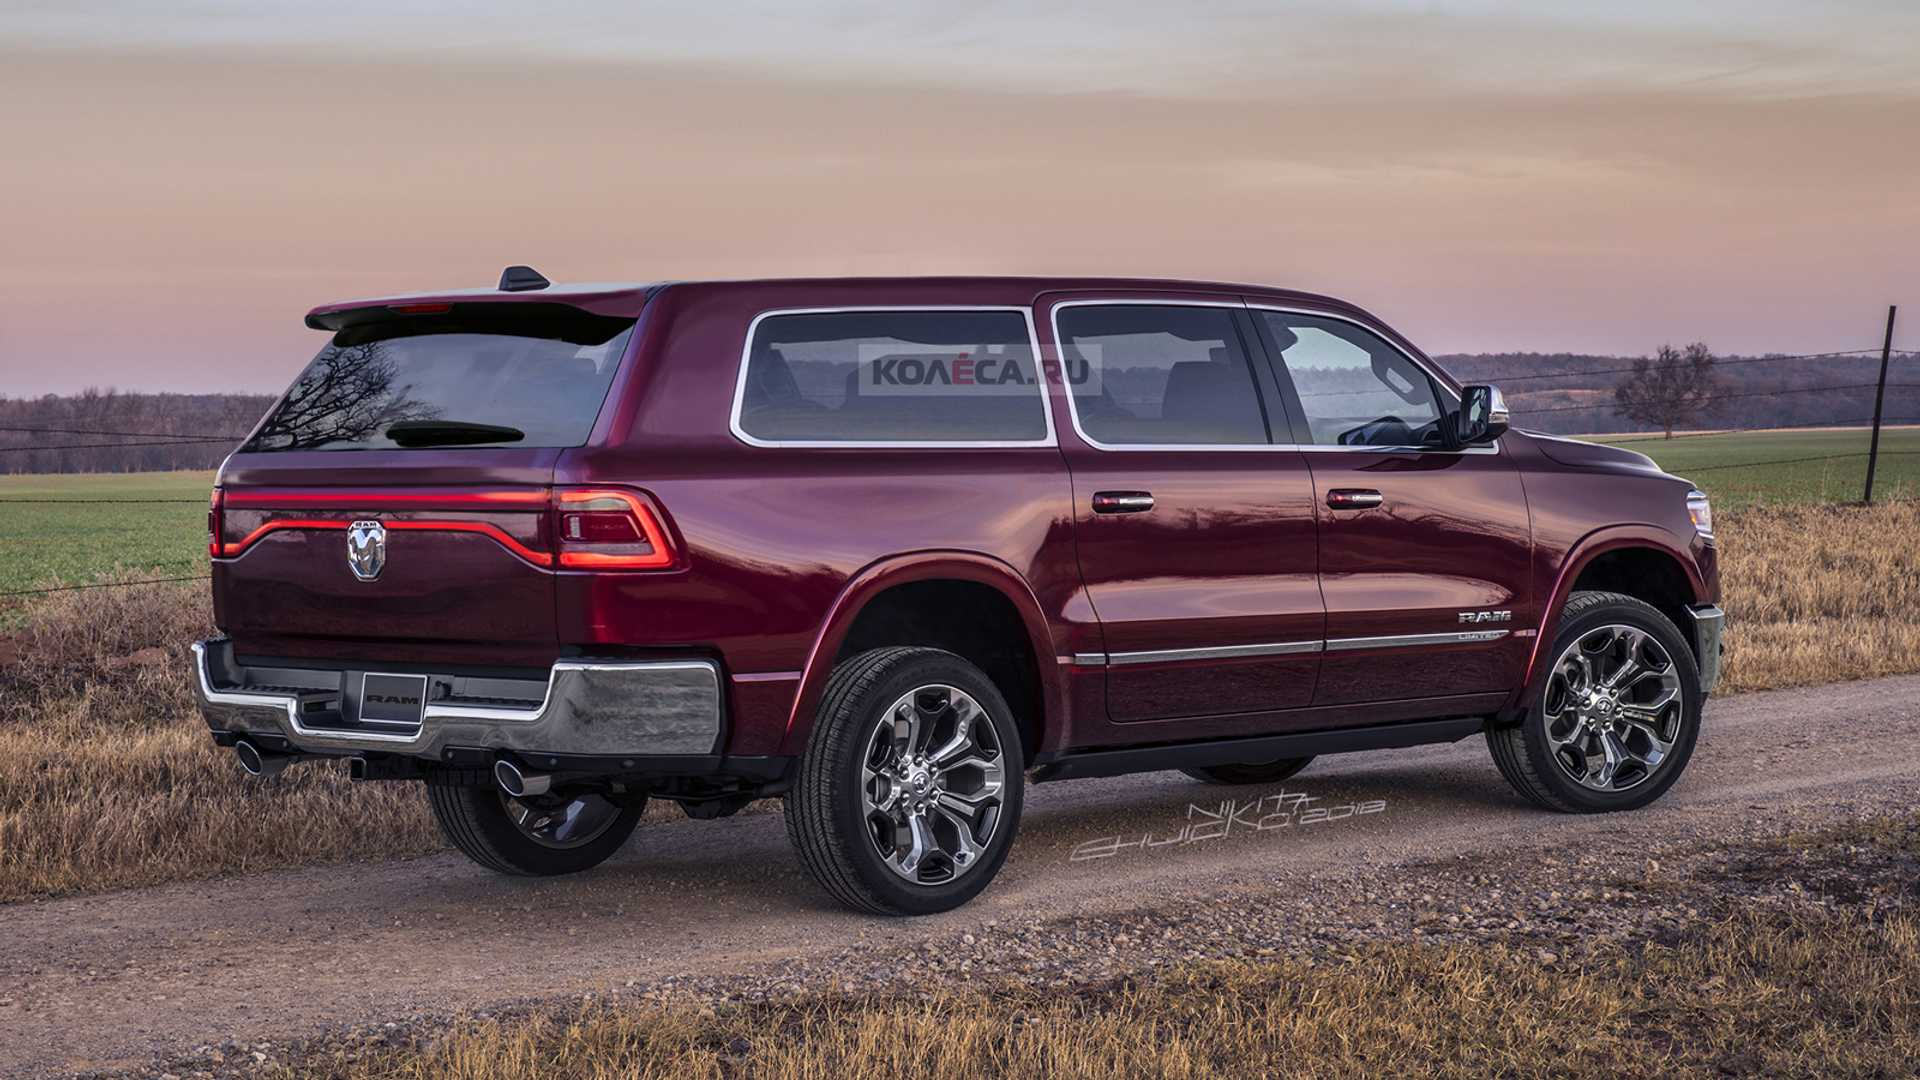 85 Best Dodge Ramcharger 2020 Style